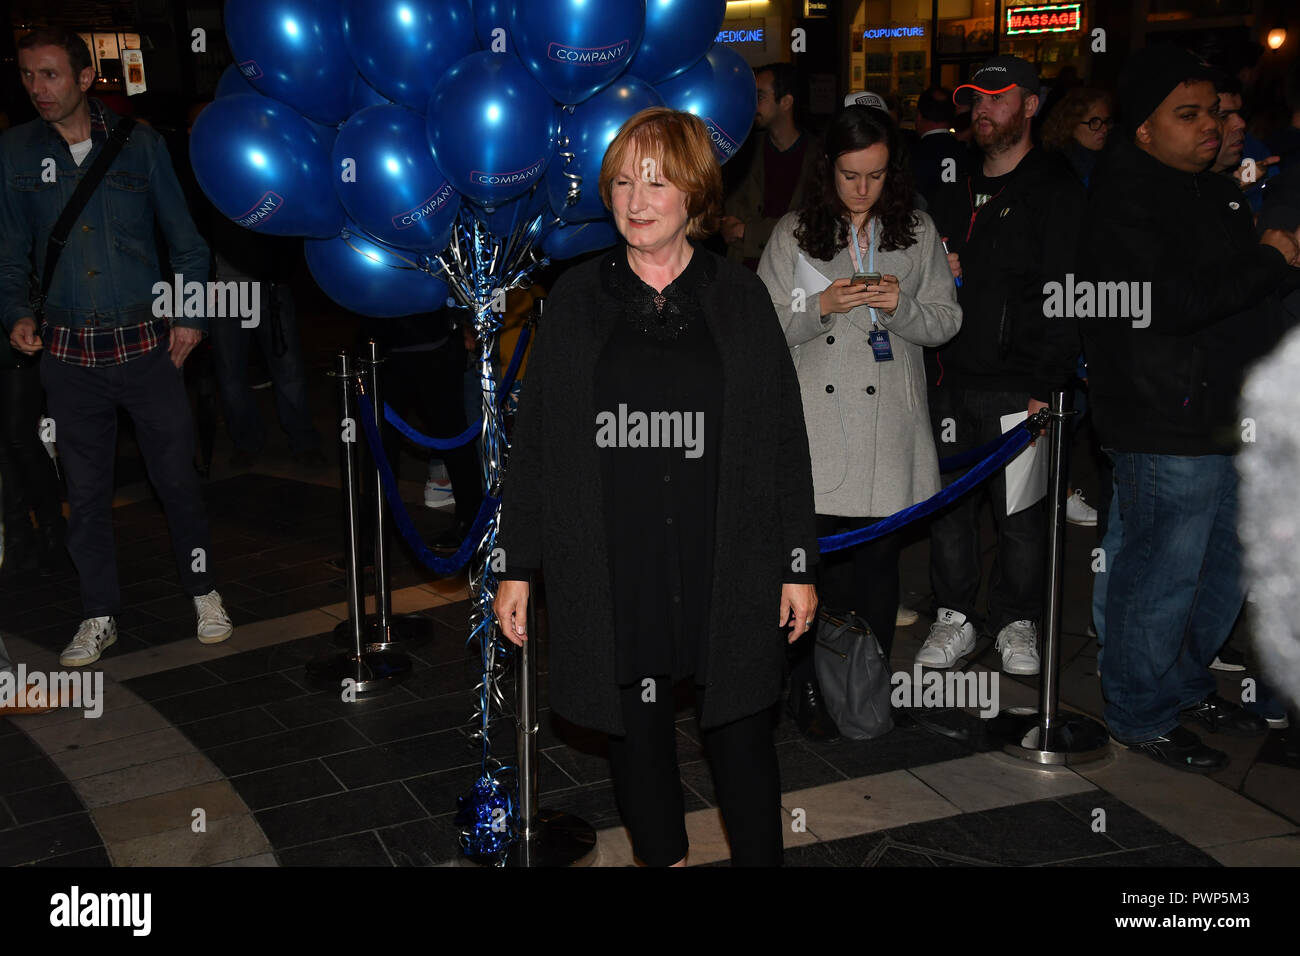 London, UK. 17th Oct, 2018. Deborah Findlay attend the Company - Opening Night at Gielgud Theatre, London, UK. 17 October 2018. Credit: Picture Capital/Alamy Live News - Stock Image